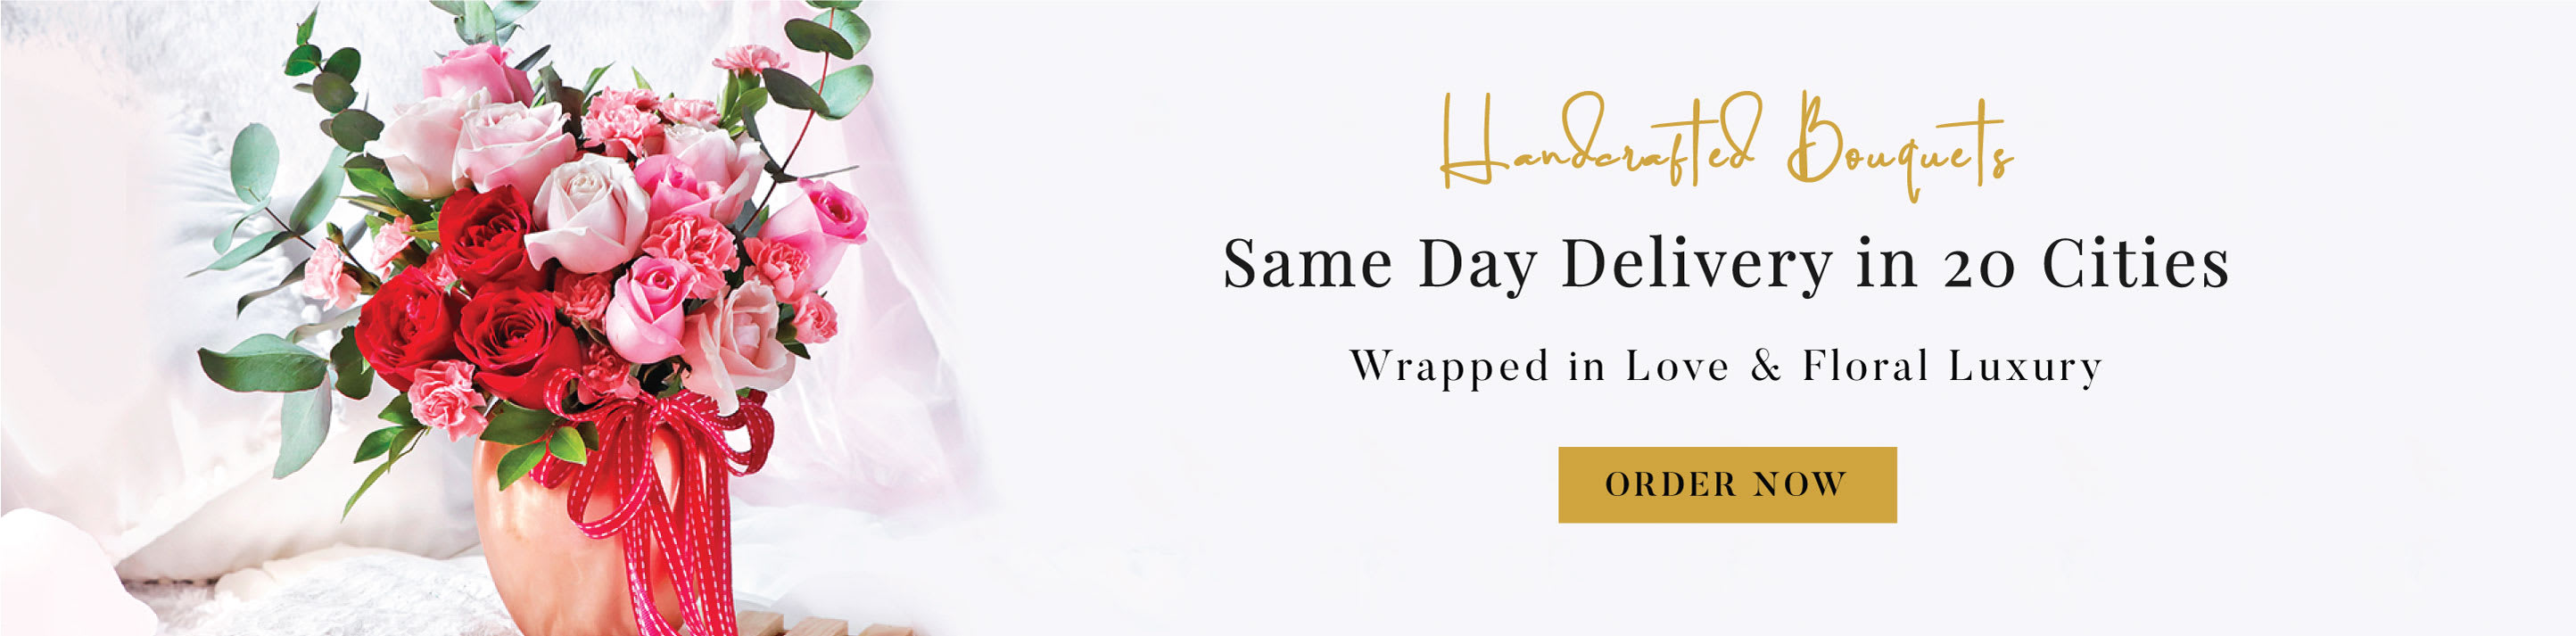 Same Day Delivery Collection